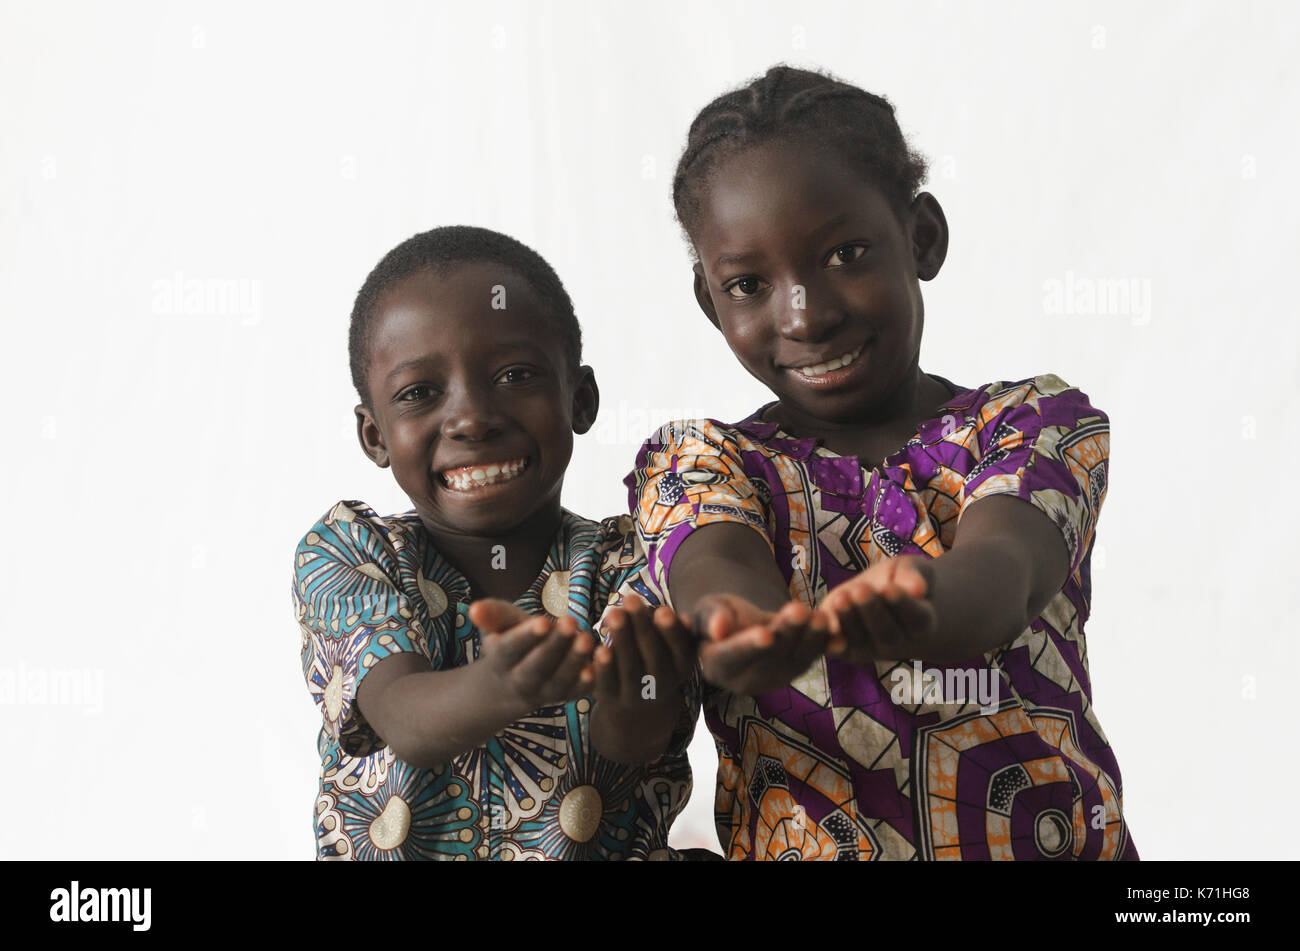 Two African children showing their palms asking begging for something, whilst smiling, isolated on white - Stock Image